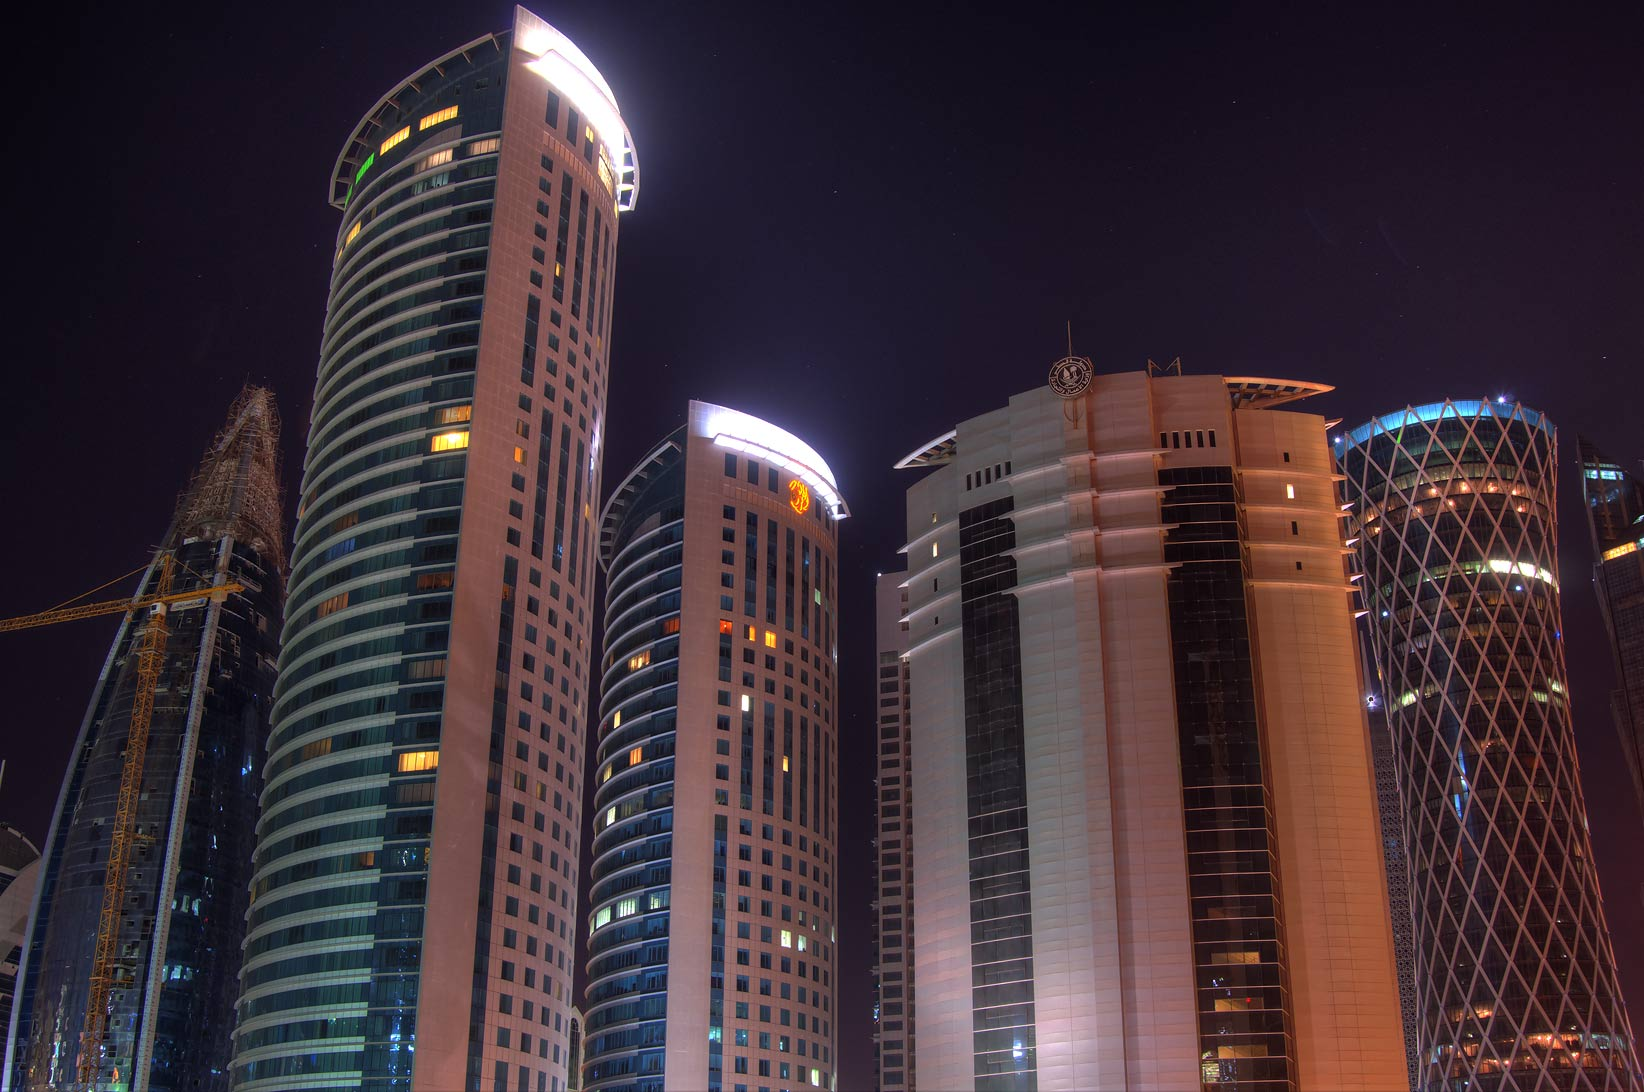 West Bay towers behind City Center. Doha, Qatar